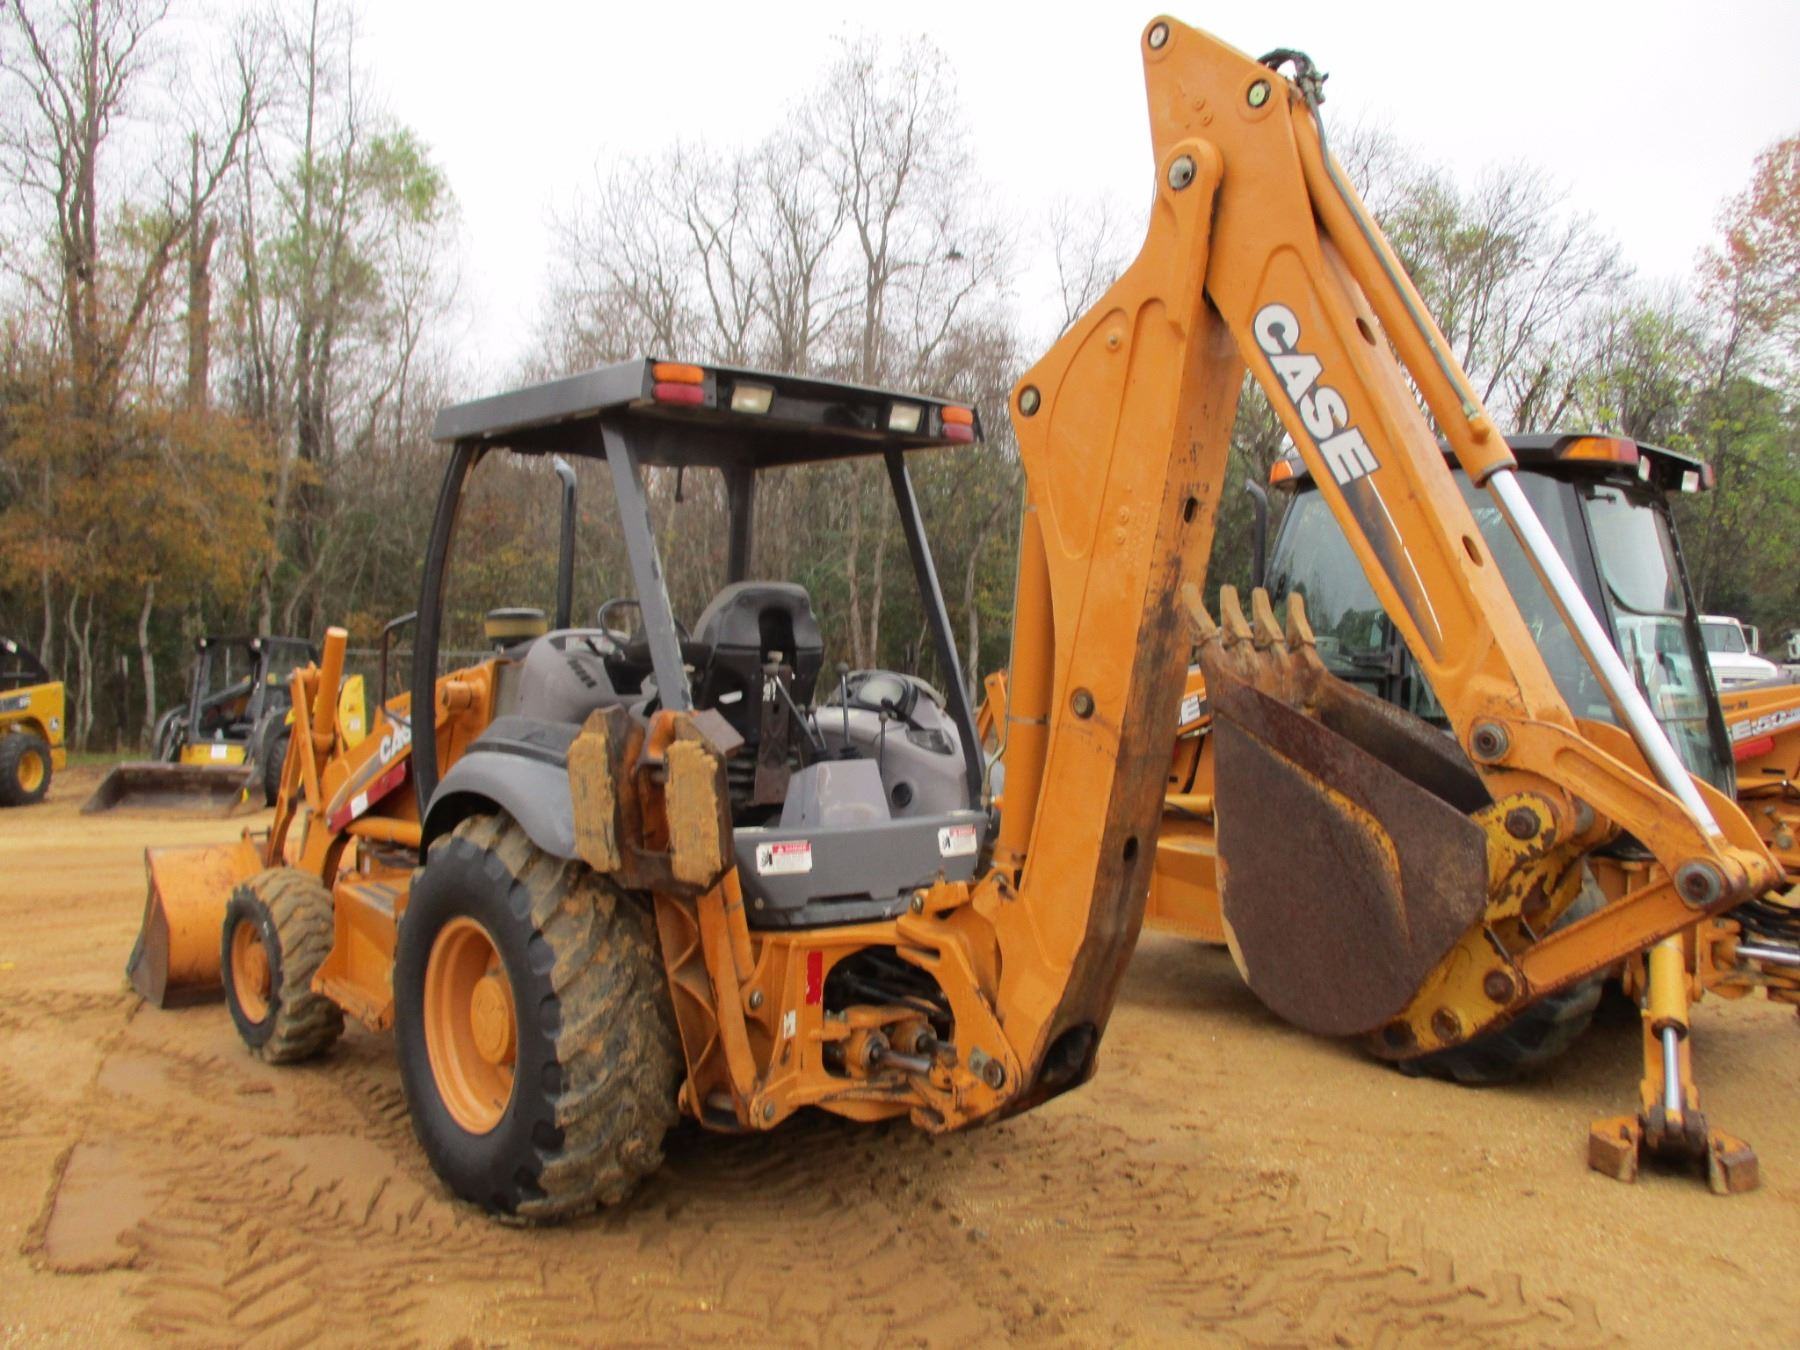 medium resolution of  image 4 2003 case 580m loader backhoe vin sn jjg0309088 4x4